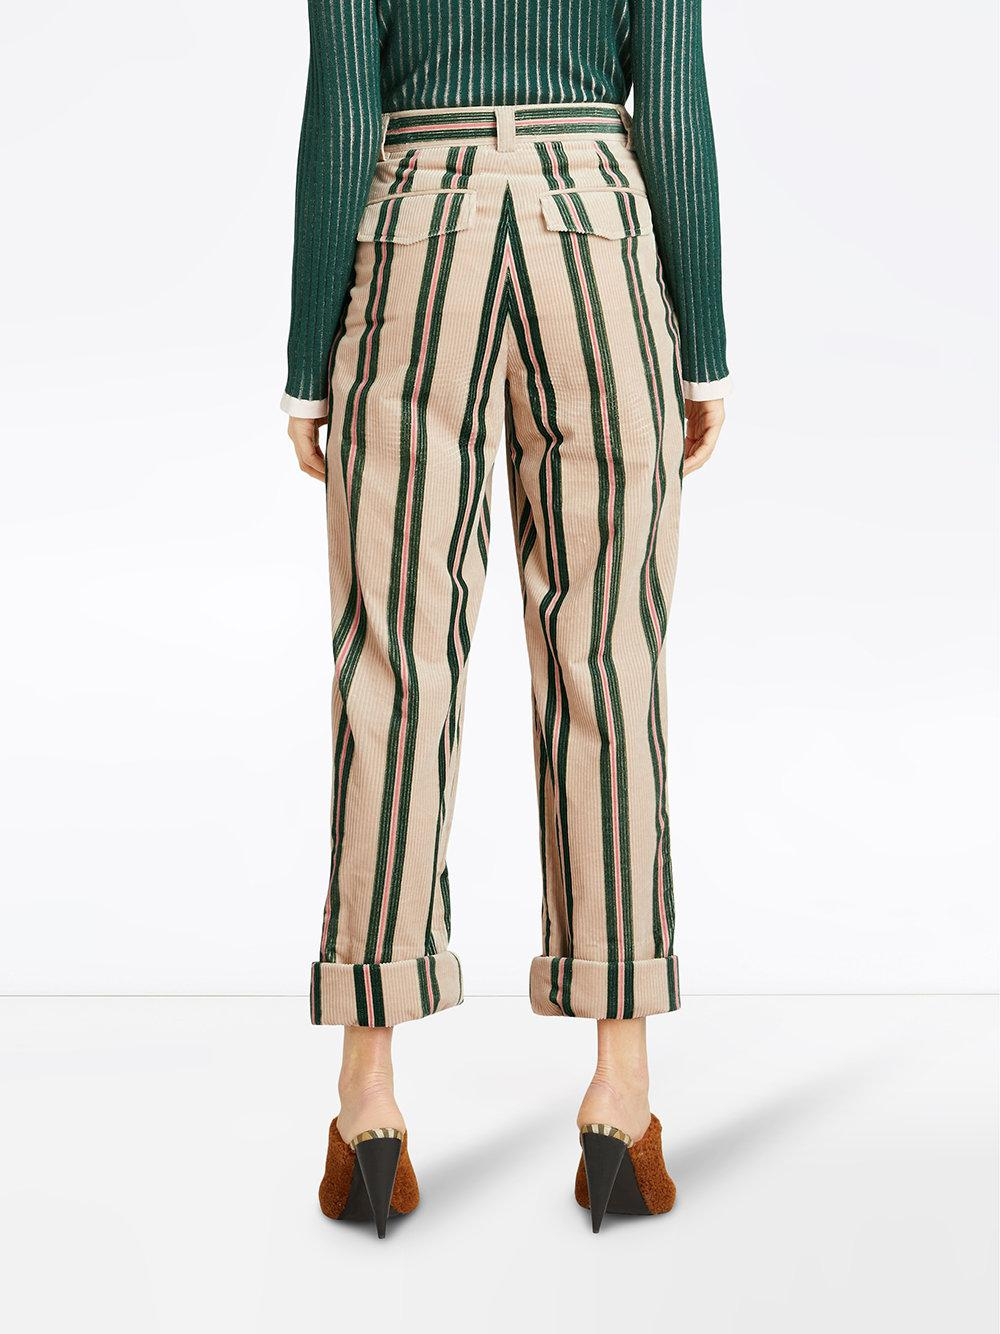 8428bee22f8 burberry-Nude-Neutrals-Roll-up-Cuff-Striped-Corduroy-Trousers.jpeg